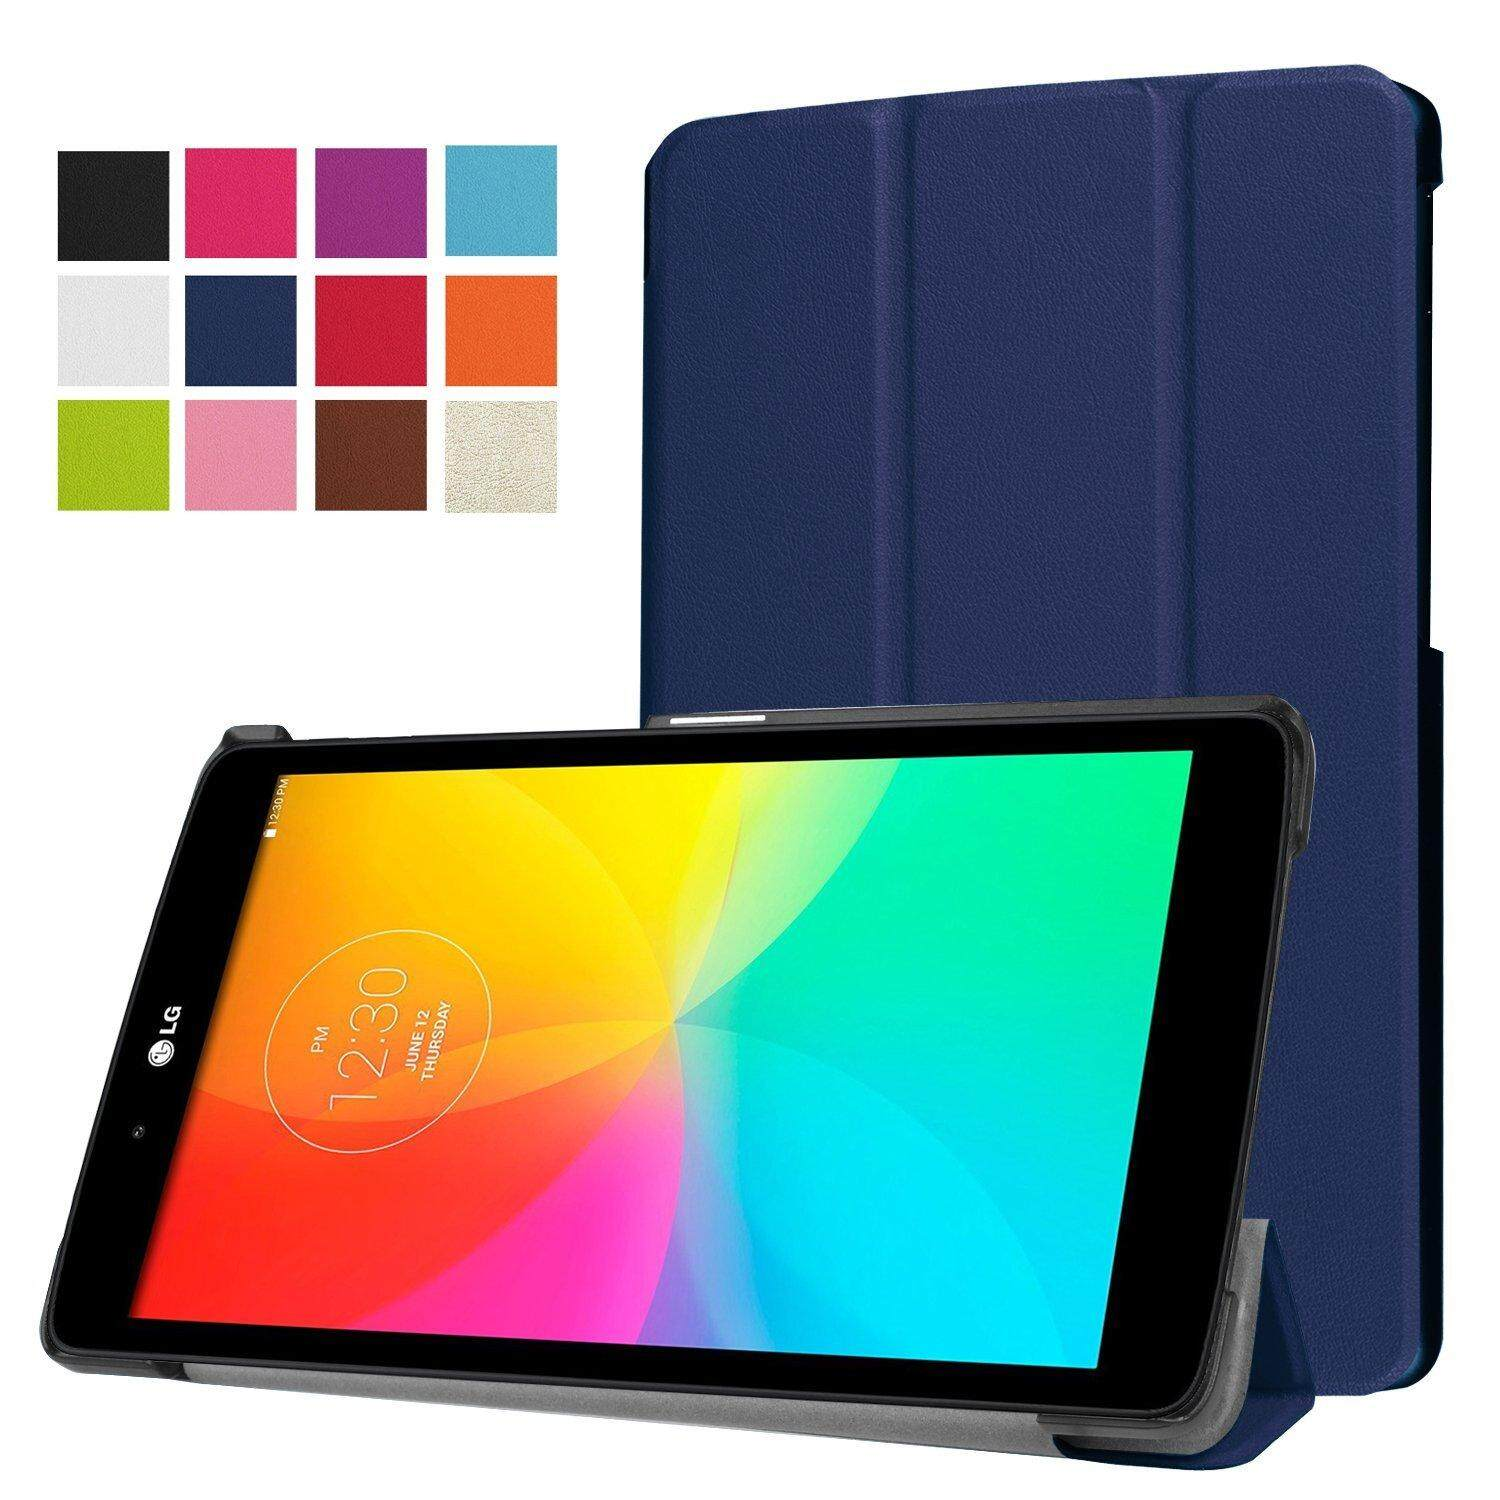 LG G Pad X 8.0 Case,LG G Pad III 3 8.0 Case,CLOUDSEA Ultra Slim Lightweight PU Leather Stand Cover LG G Pad X 8.0 (T-Mobile V521WG) / G Pad III 8.0 V525 8-Inch Tablet - intl